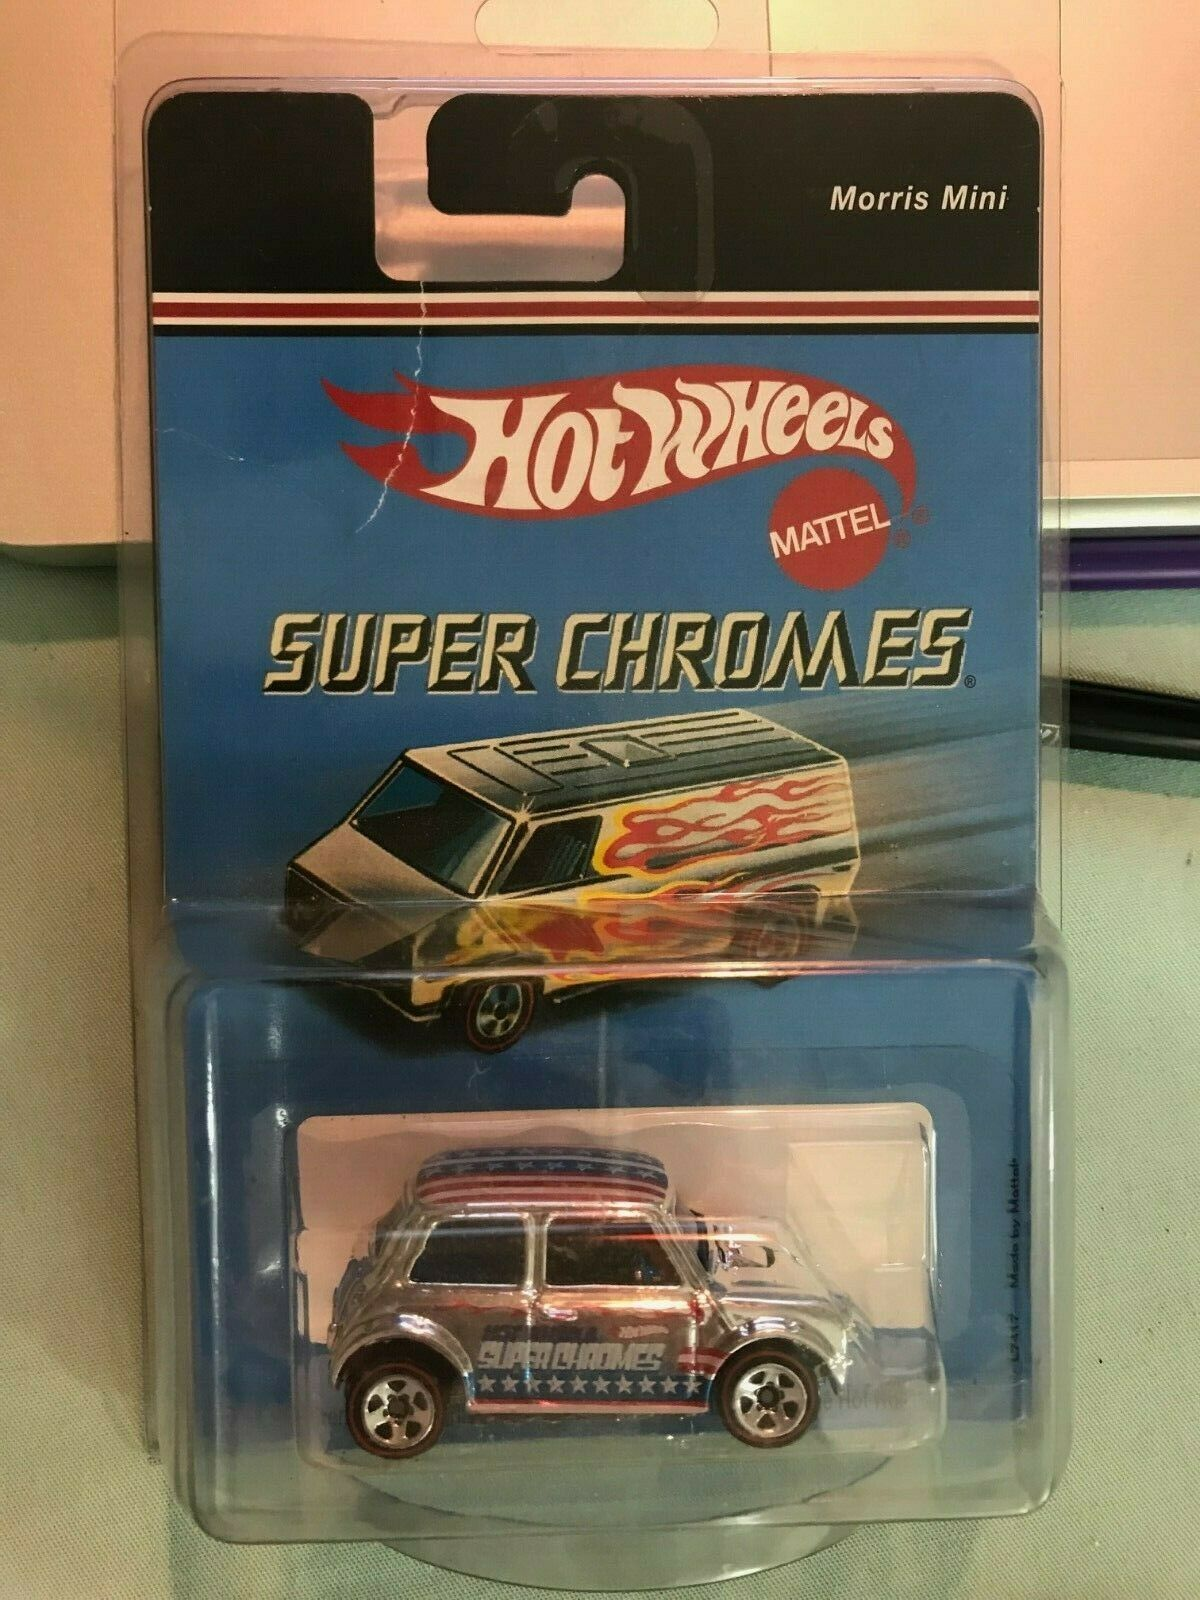 HOT WHEELS 2004 SUPER CHROMES L7417 MADE BY MATTEL MORRIS MINI